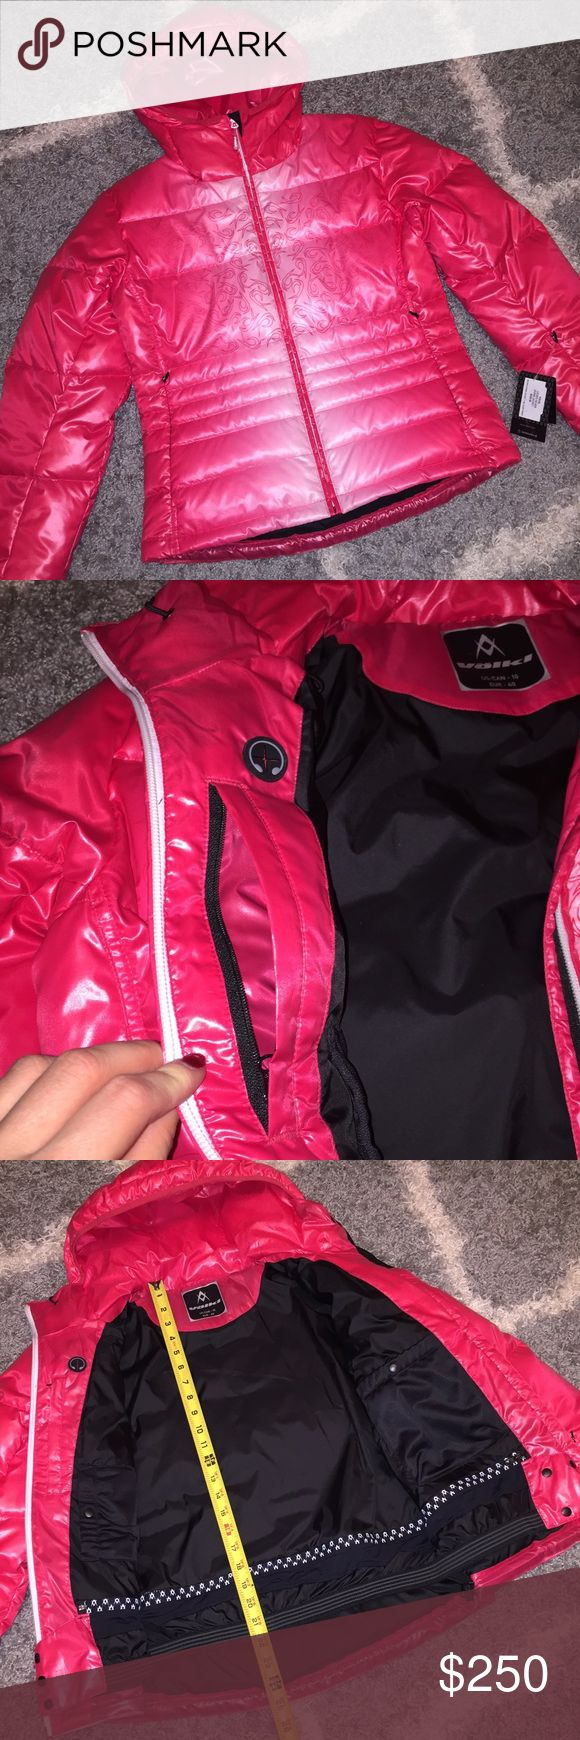 Puffer Down Jacket for Winter Outdoors by Völkl For those who choose quality while enjoying winter activities such as skiing, snowboarding, etc. New with tags. Absolutely gorgeous color. High quality goose down. Plenty of pockets (all of them pictured), adjustable waist, hood. Inner phone pocket large enough for iPhone Plus. Size EUR 40, equivalent US 4. I'm size 2, it fits me perfect. Völkl is a sports equipment manufacturer based in Germany. Initially it manufactured skis, but has extended…